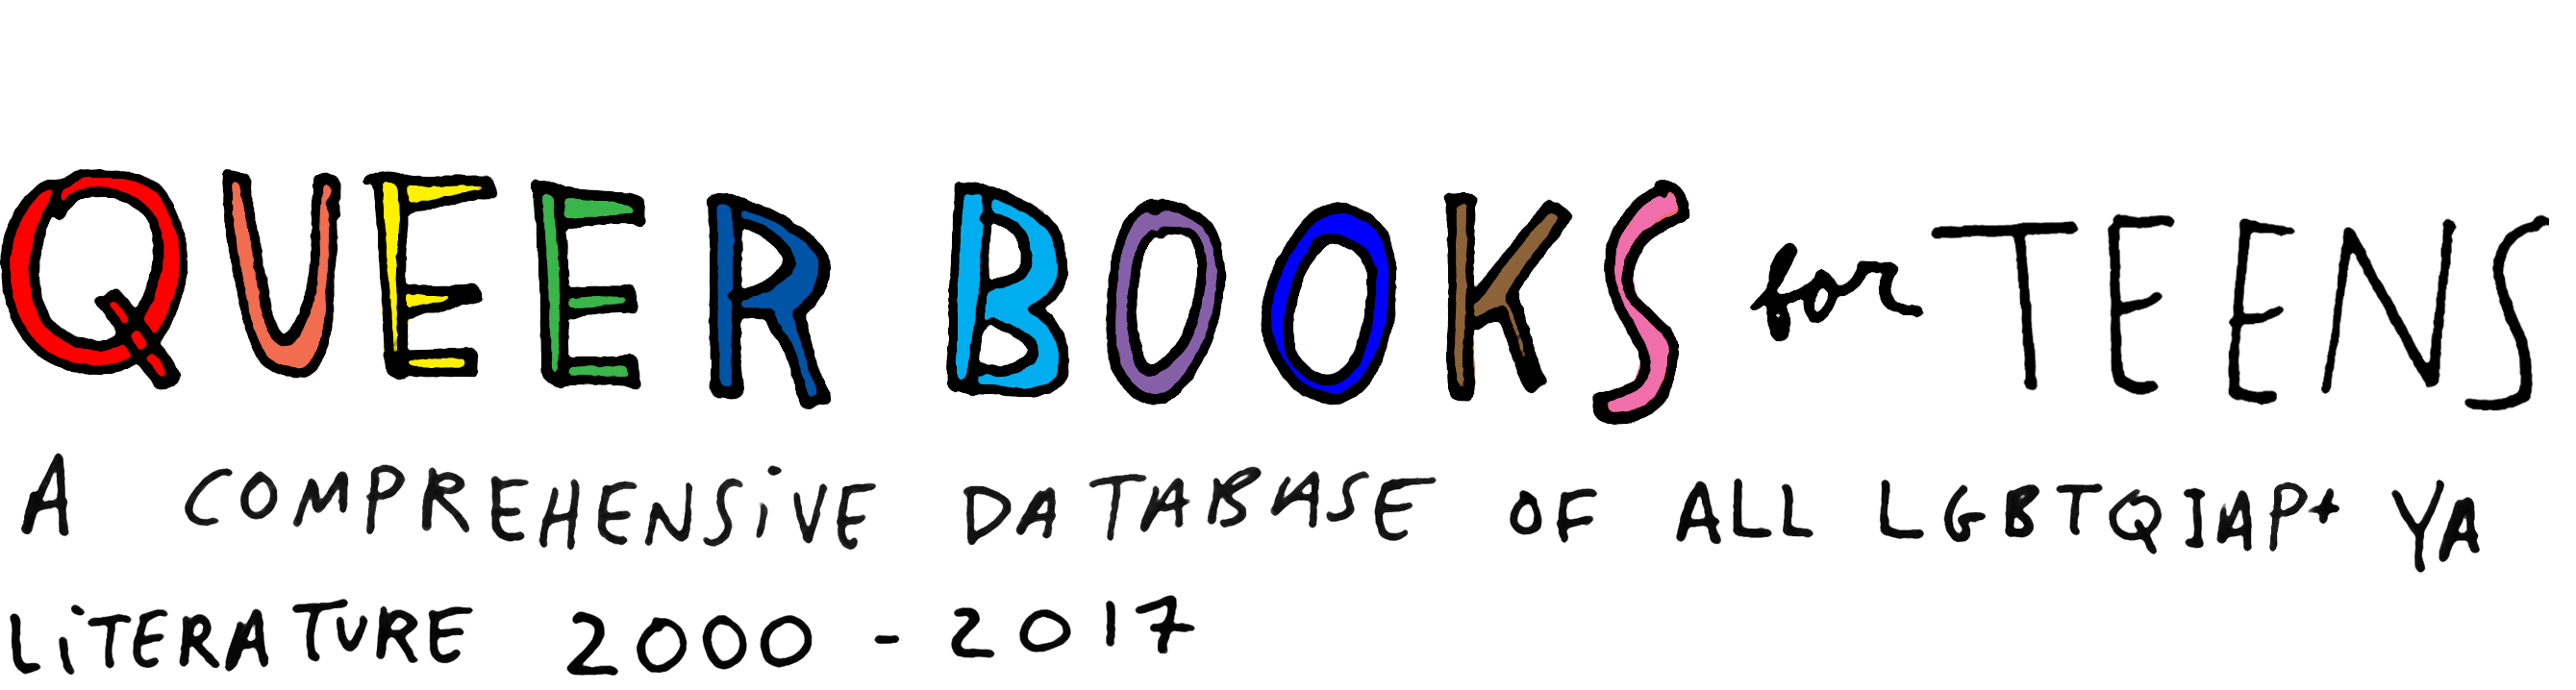 queer books for teens, handwritten with 'queer books' filled in with rainbow colors. subtitle reads, 'a comprehensive database of all LGBTQIAP+ YA literature 2000-2017'